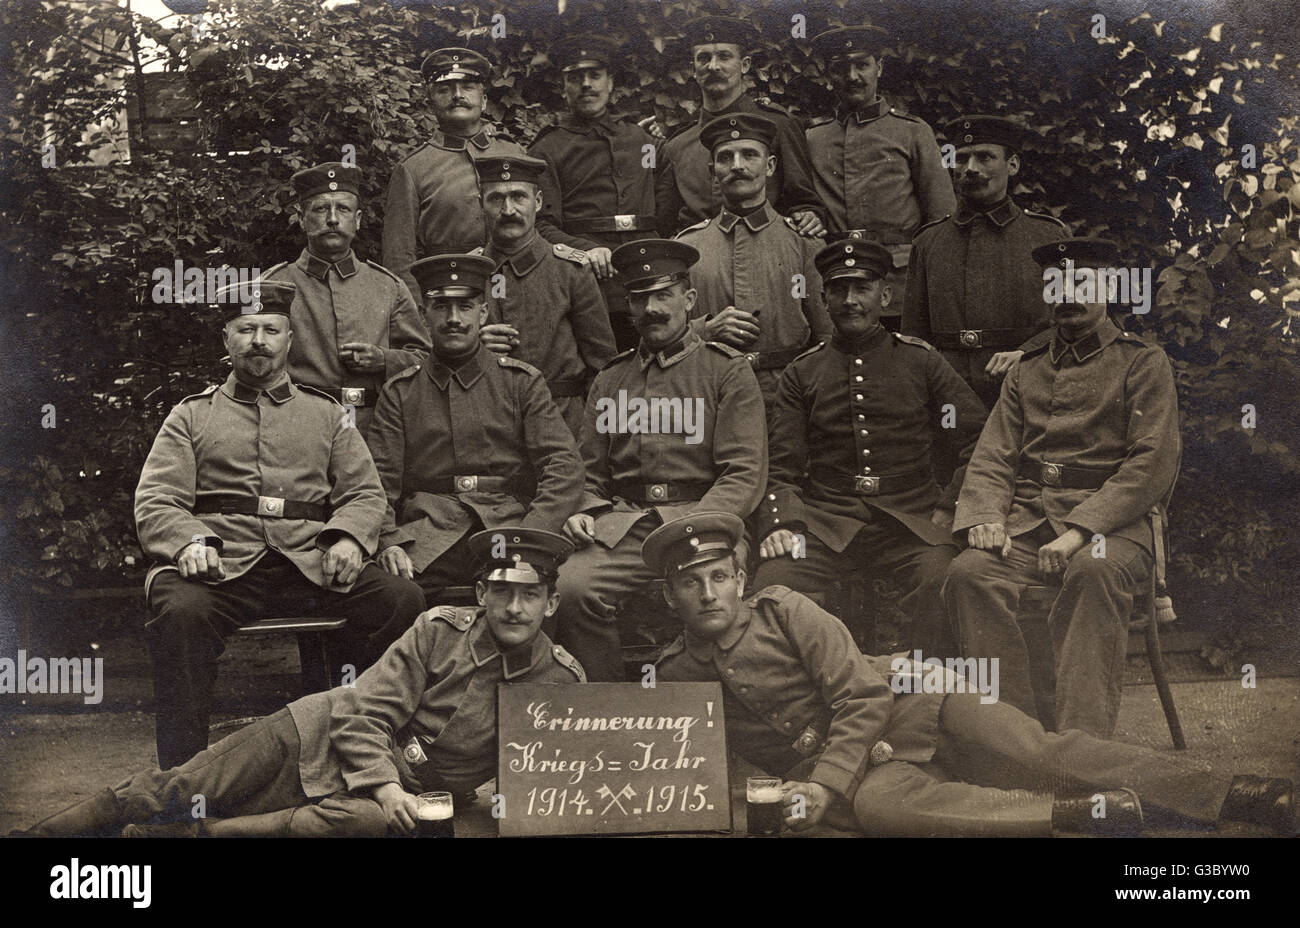 Group photo, men of the German 14th Regiment.      Date: 1915 - Stock Image